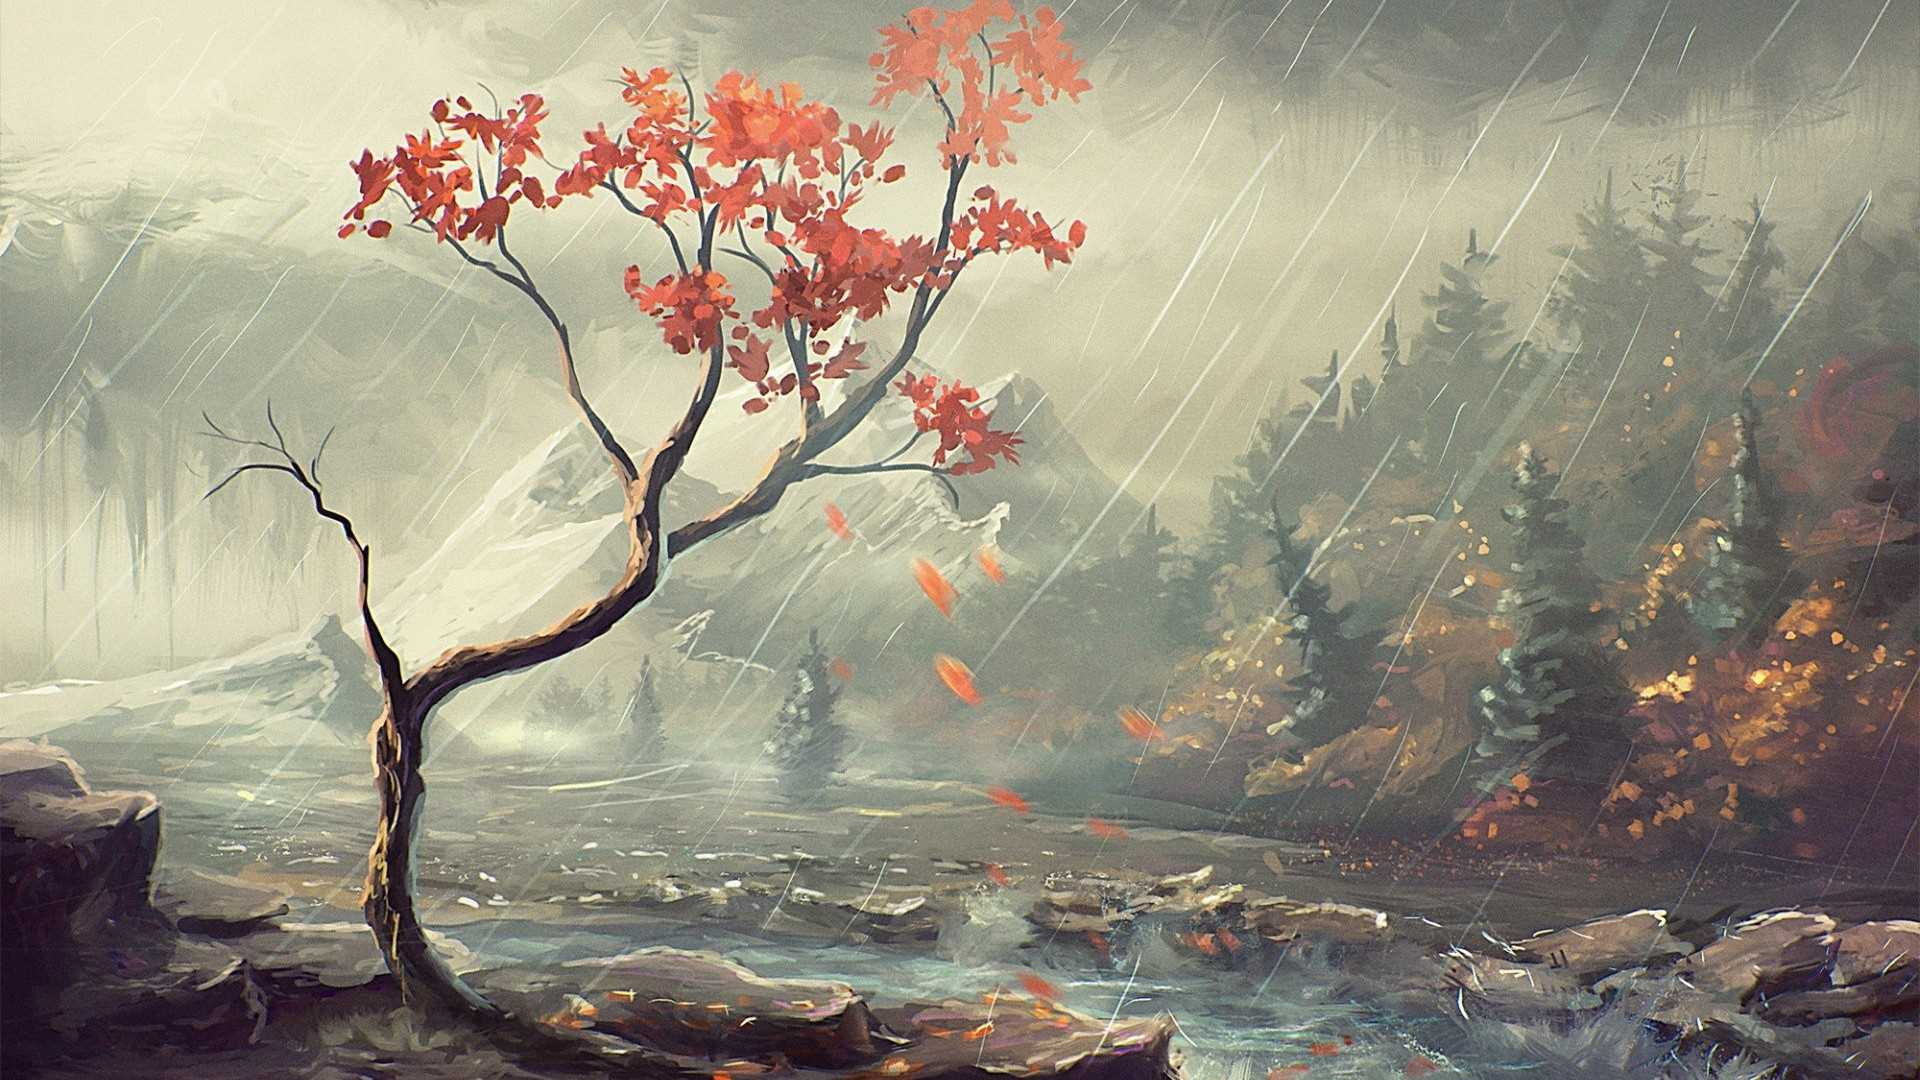 Japanese Landscape Painting Wallpapers Top Free Japanese